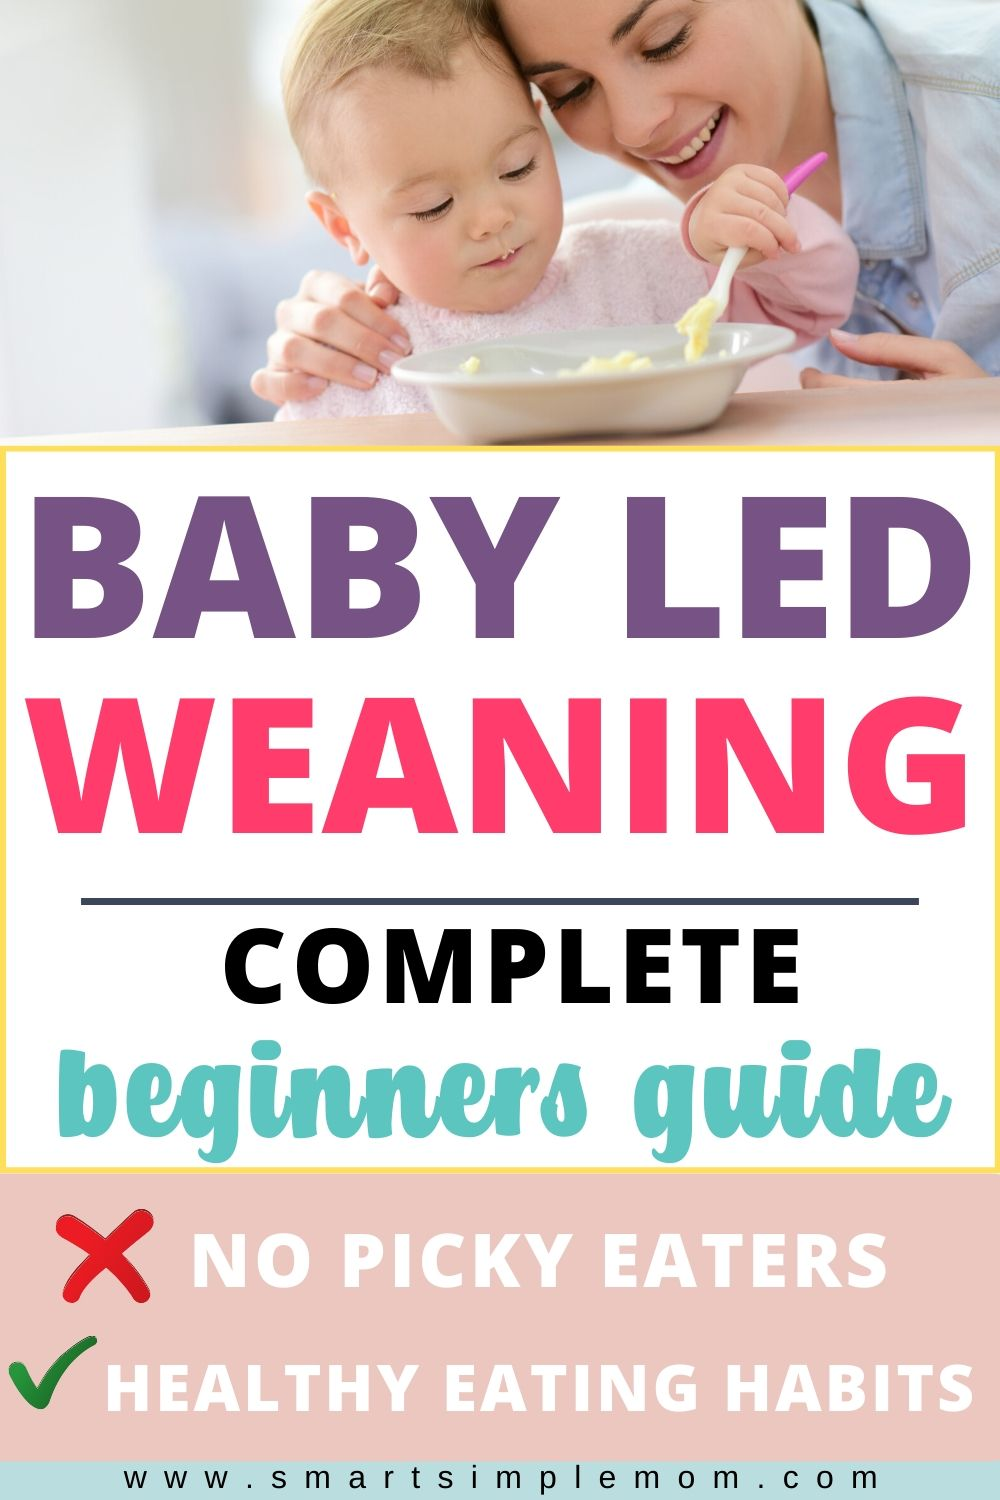 BABY LED WEANING | Beginners Guide